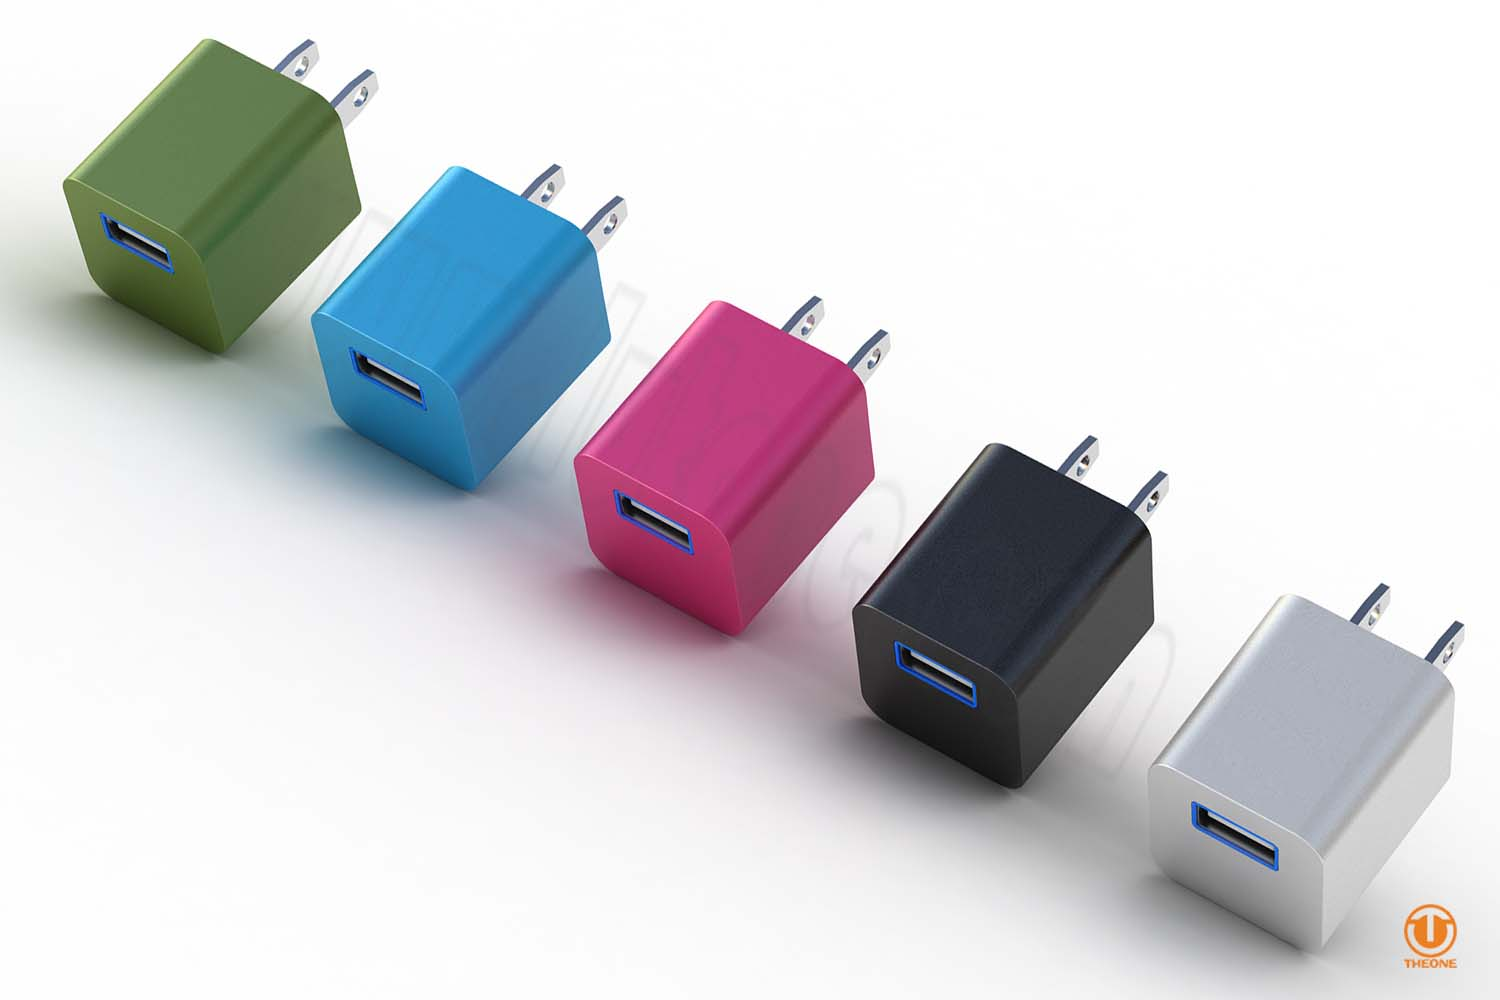 tc01a9-2 usb wall charger